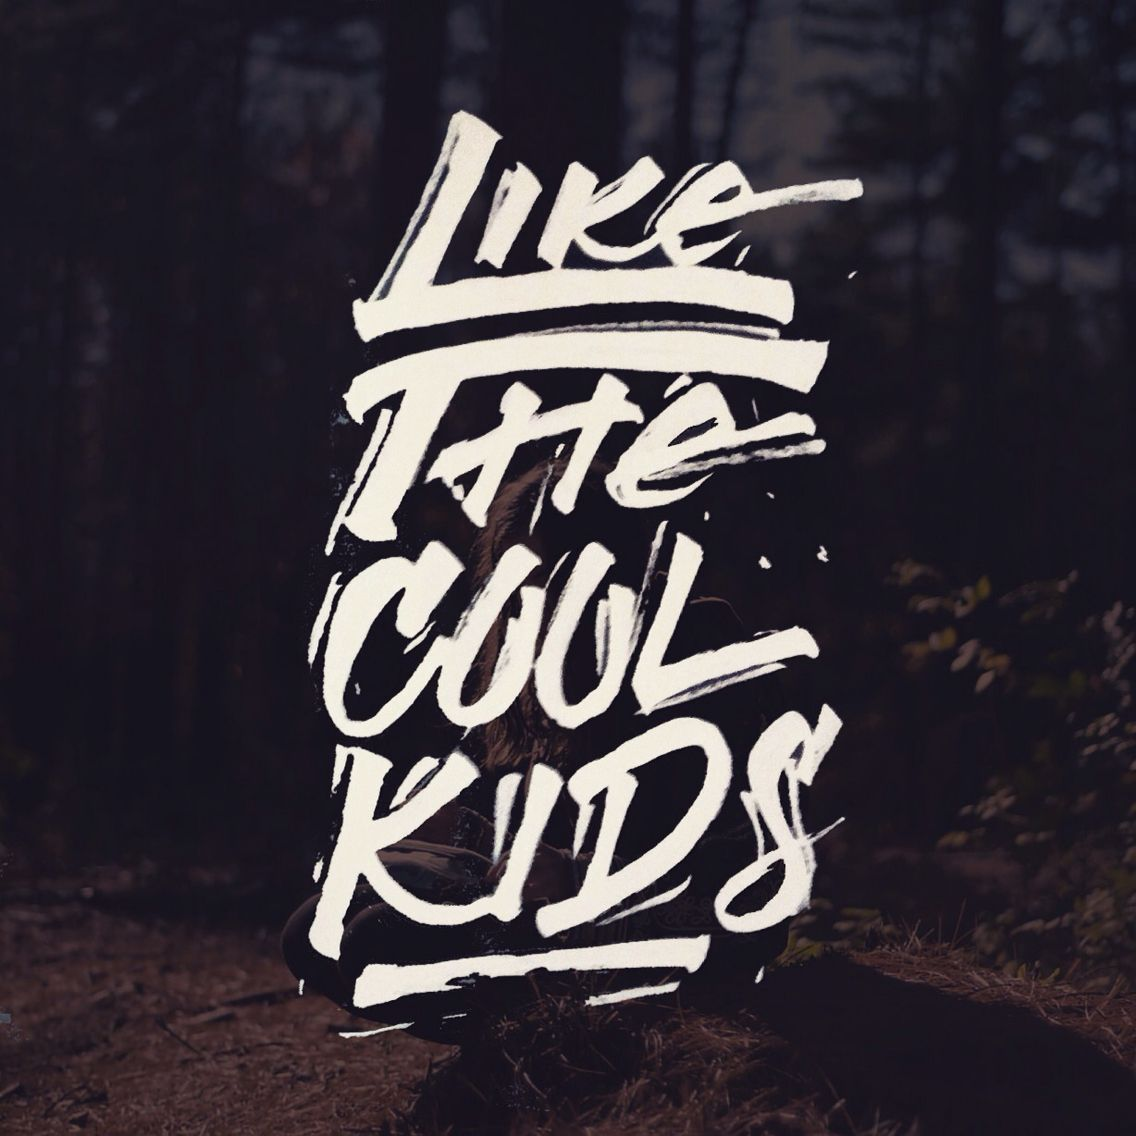 Cool kids - Echosmith. Used Pentel Pocket Brushpen for this one #calligraphy #brushpen #lettering